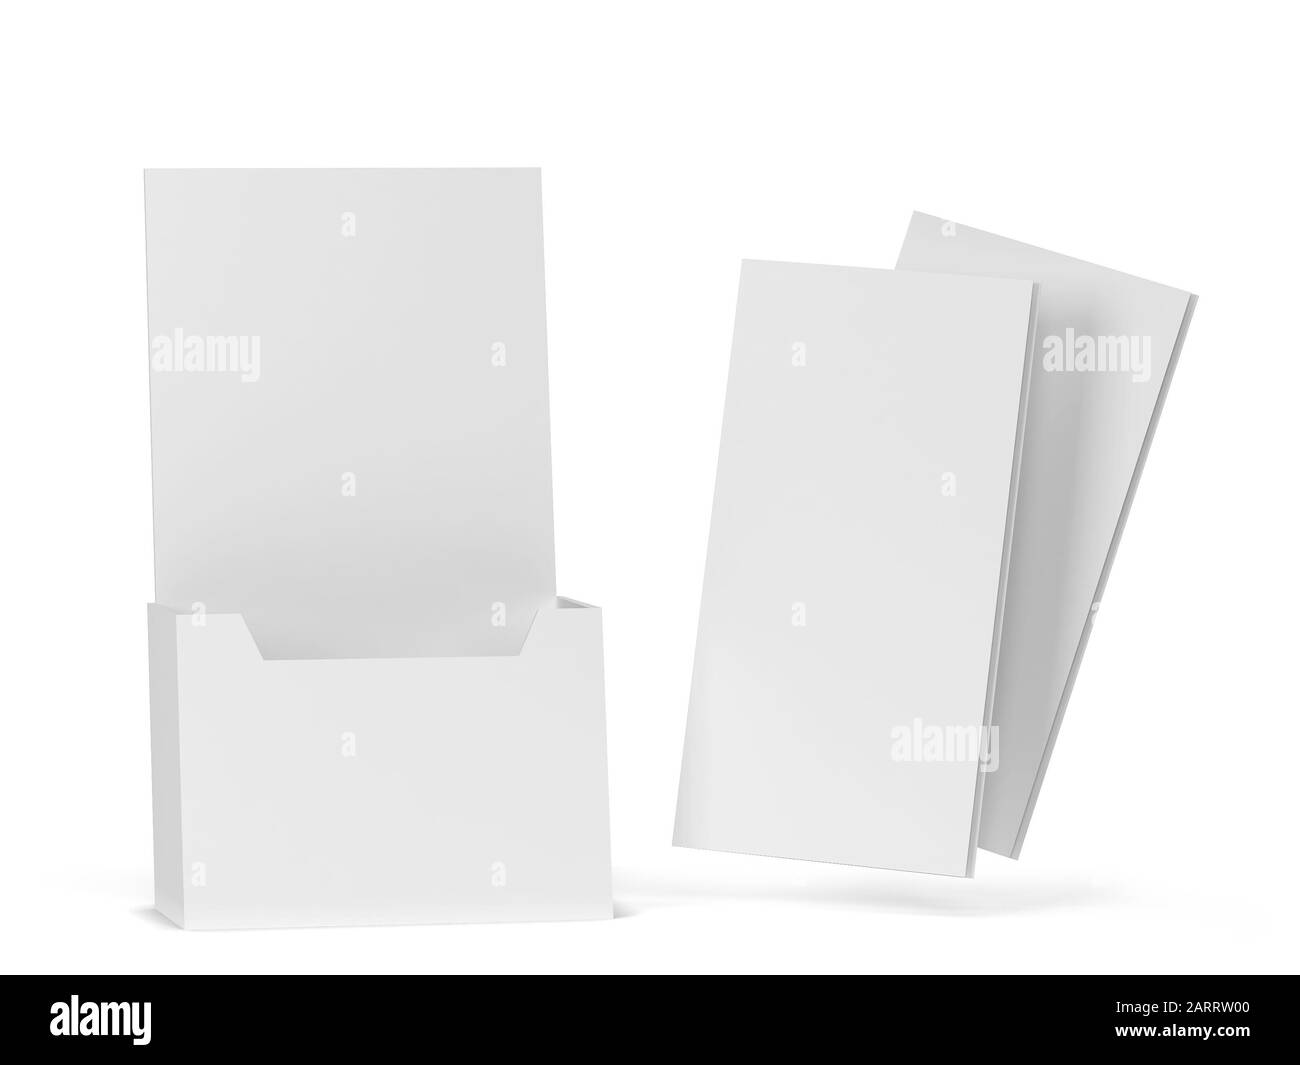 Leaflet Holder High Resolution Stock Photography and Images   Alamy